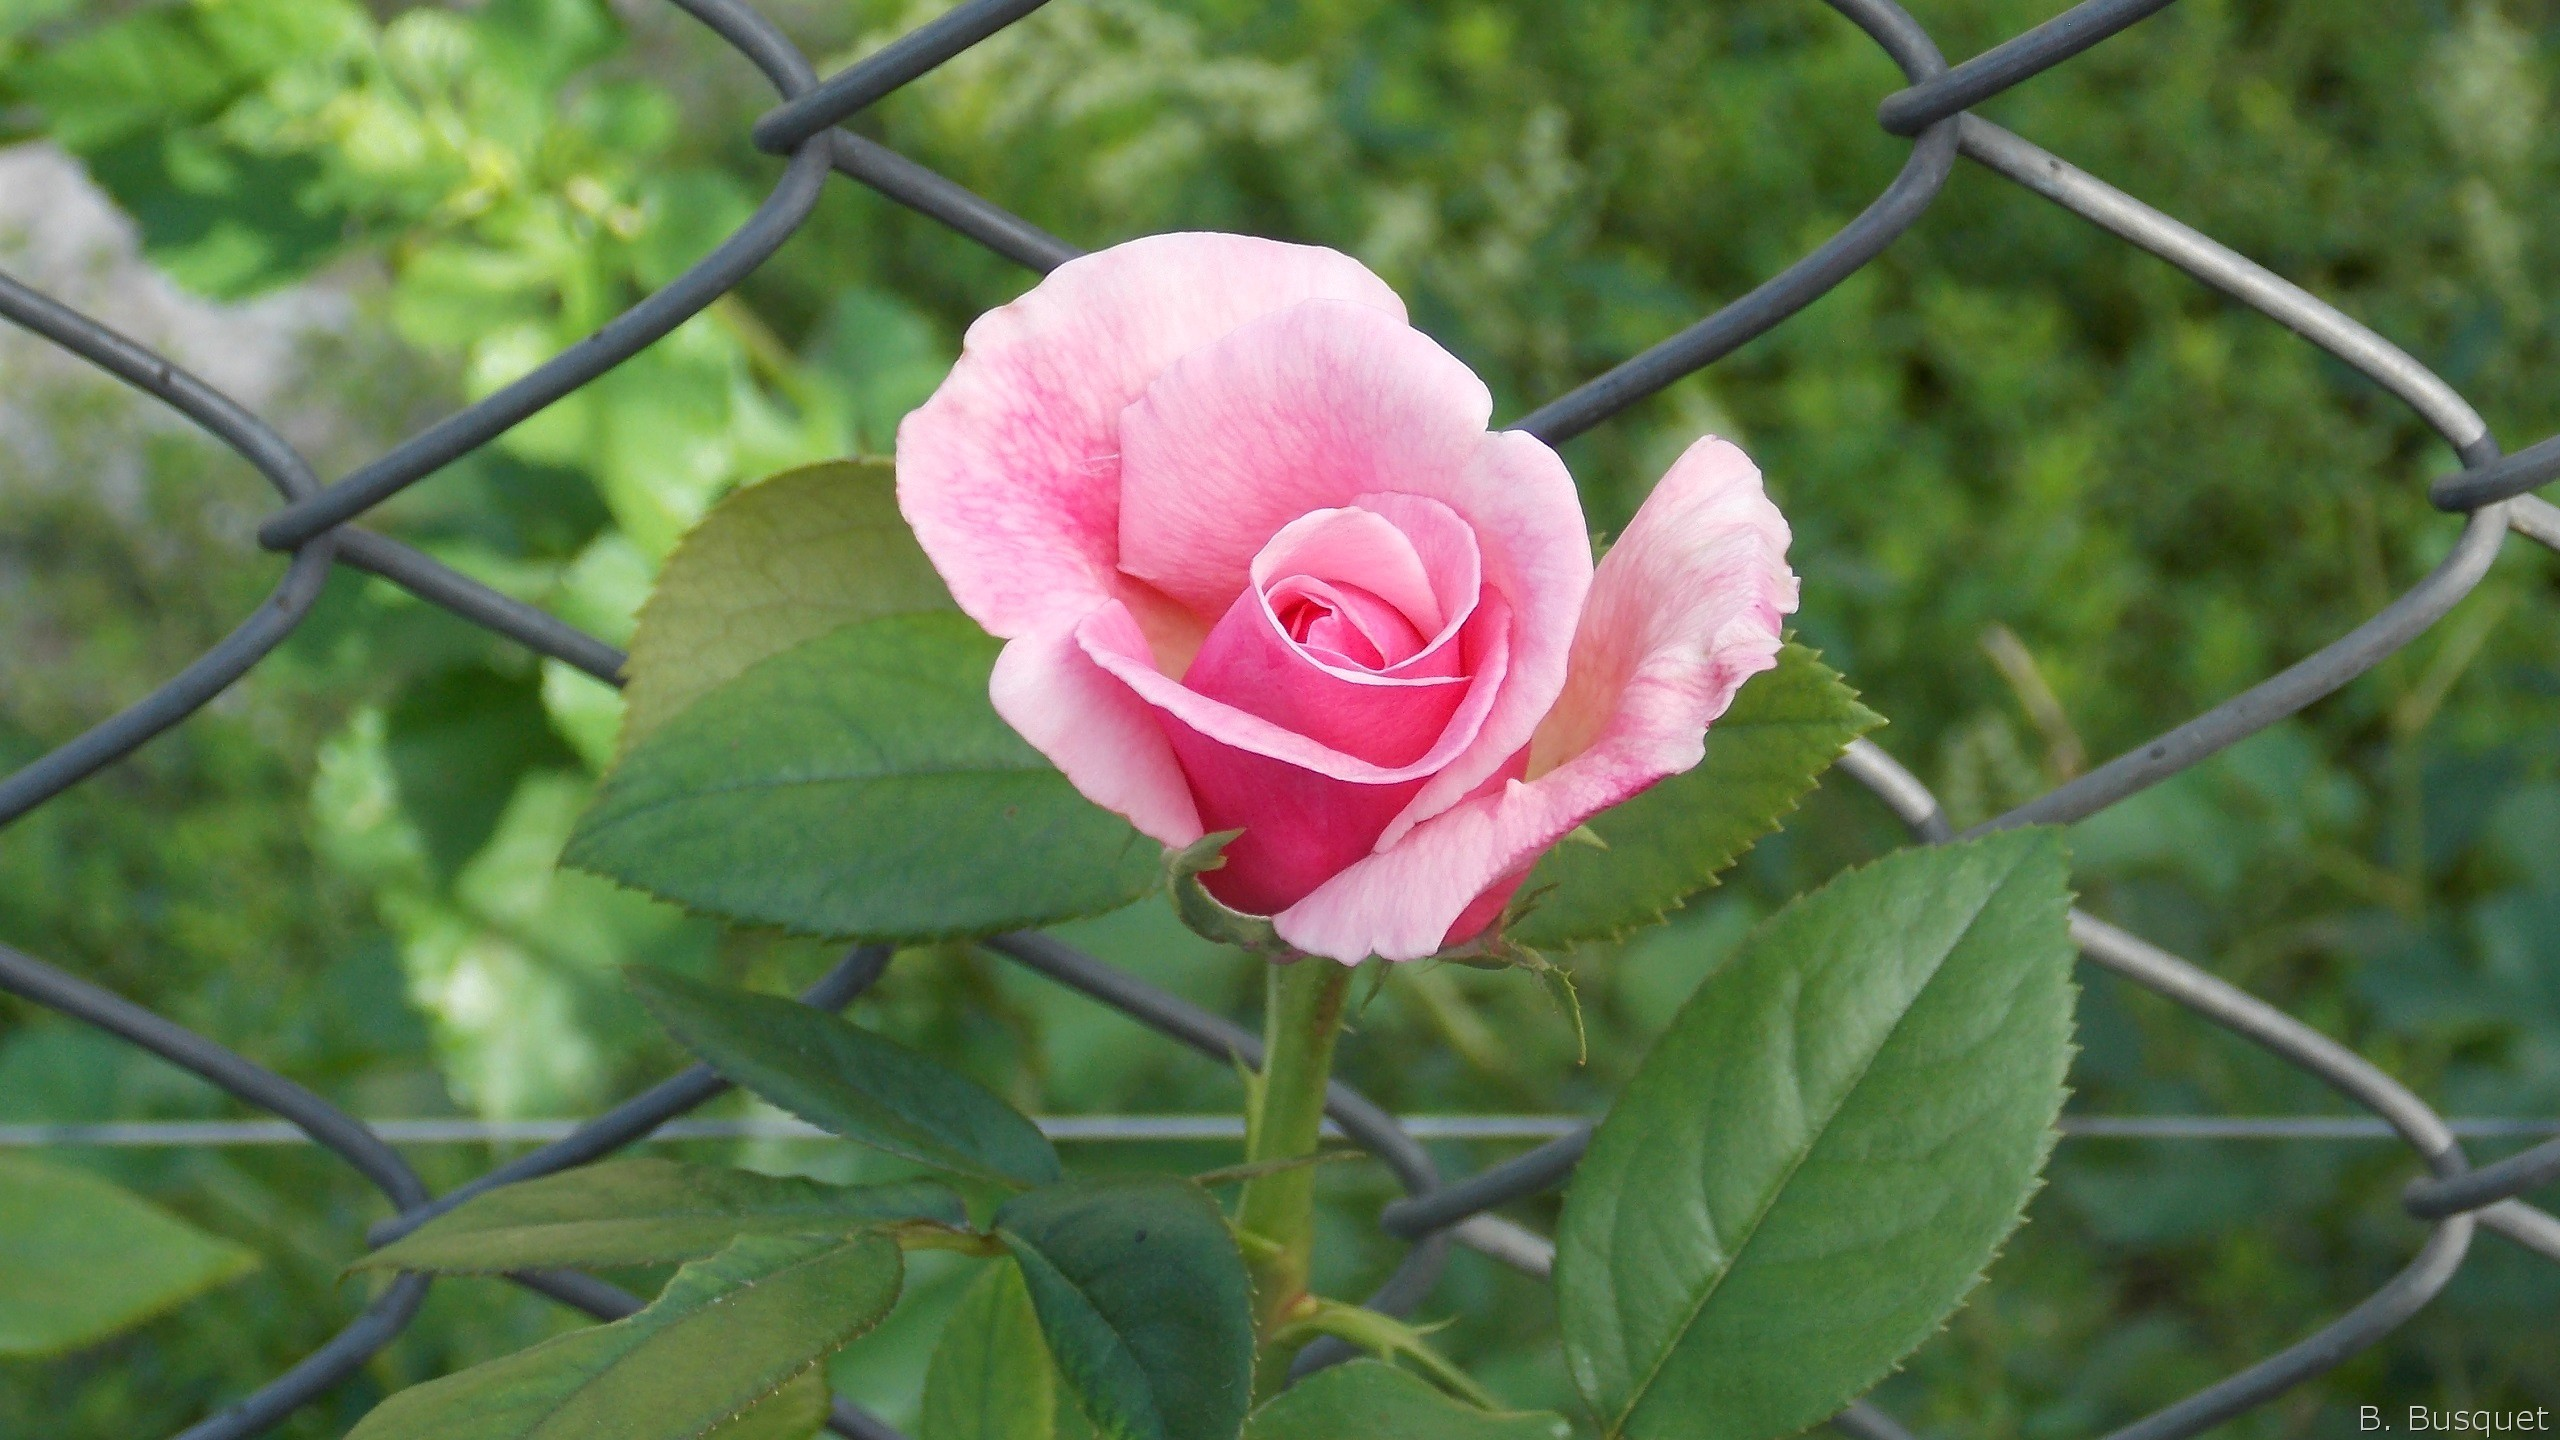 Res: 2560x1440, Mesh fence and a pink rose